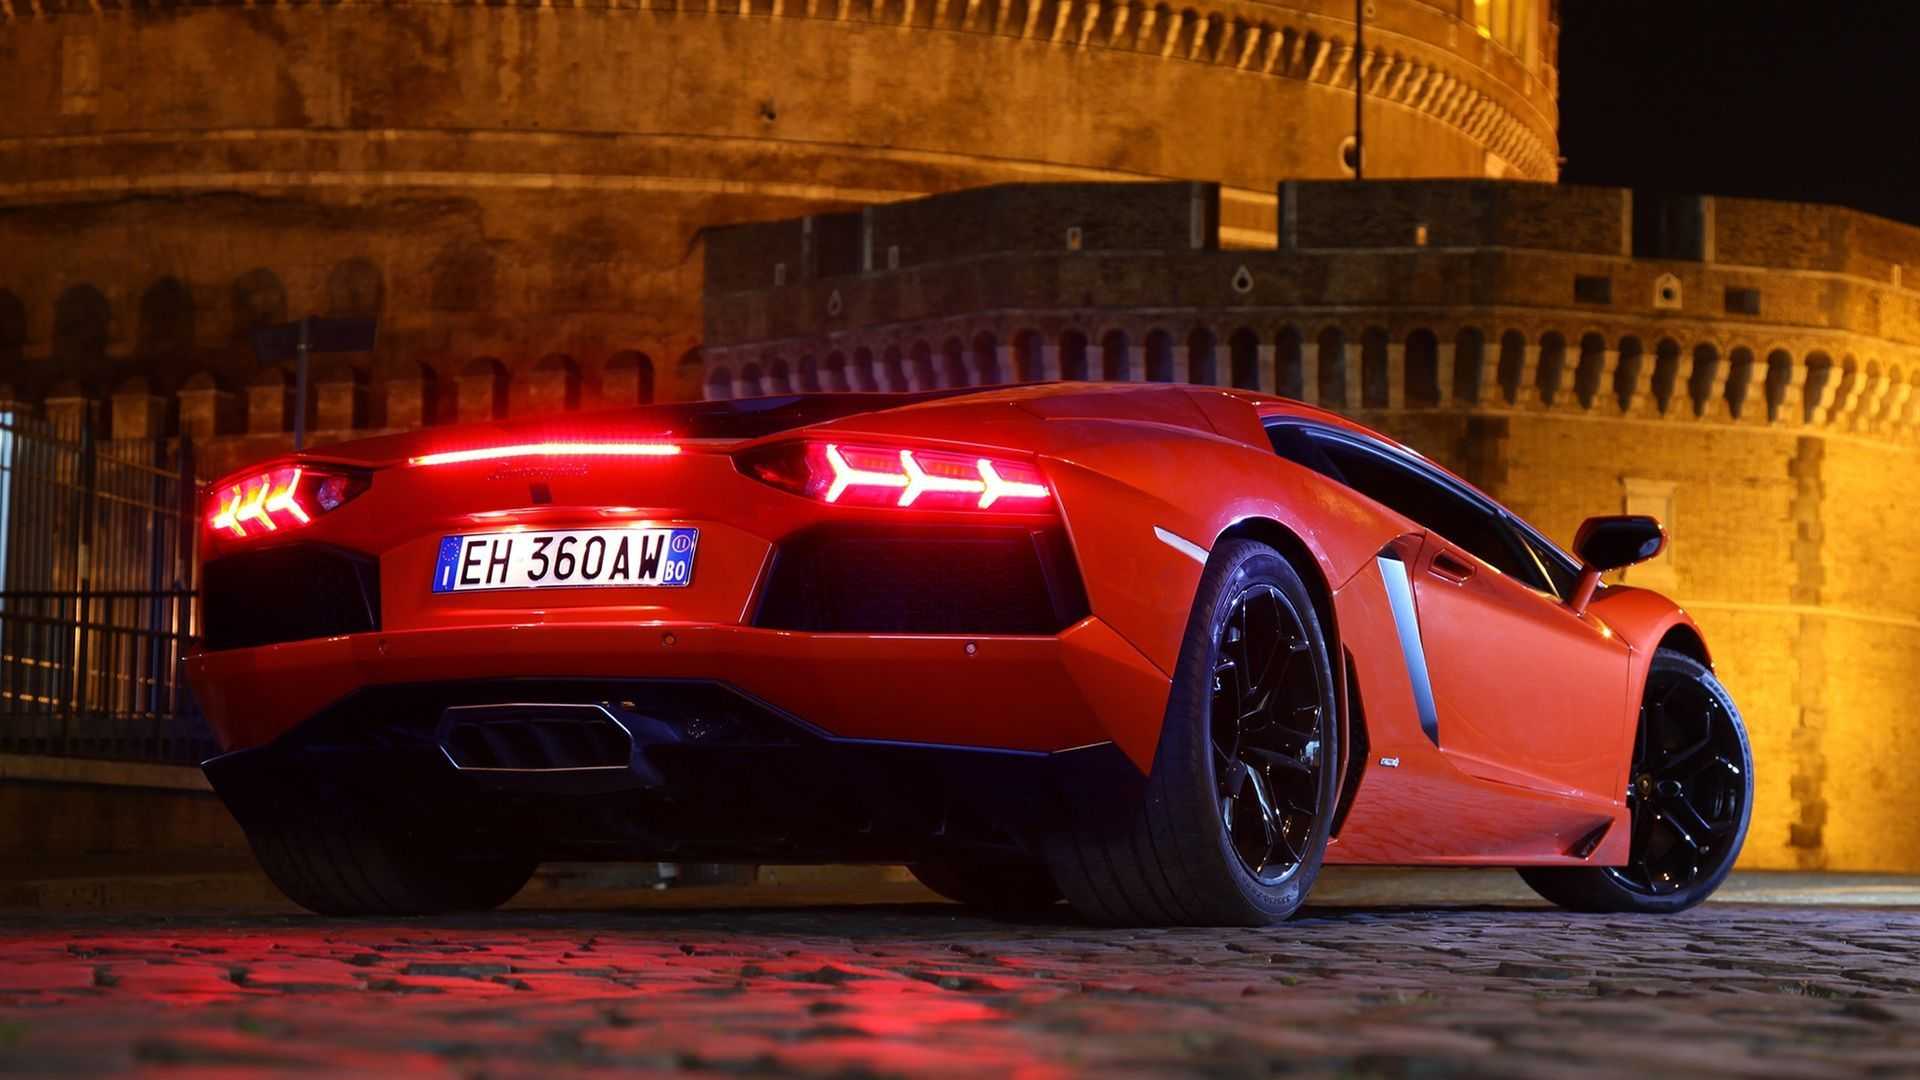 The Nicest Cars Wallpaper In 2020 Red Lamborghini Lamborghini Aventador Lp700 4 Lamborghini Aventador Wallpaper